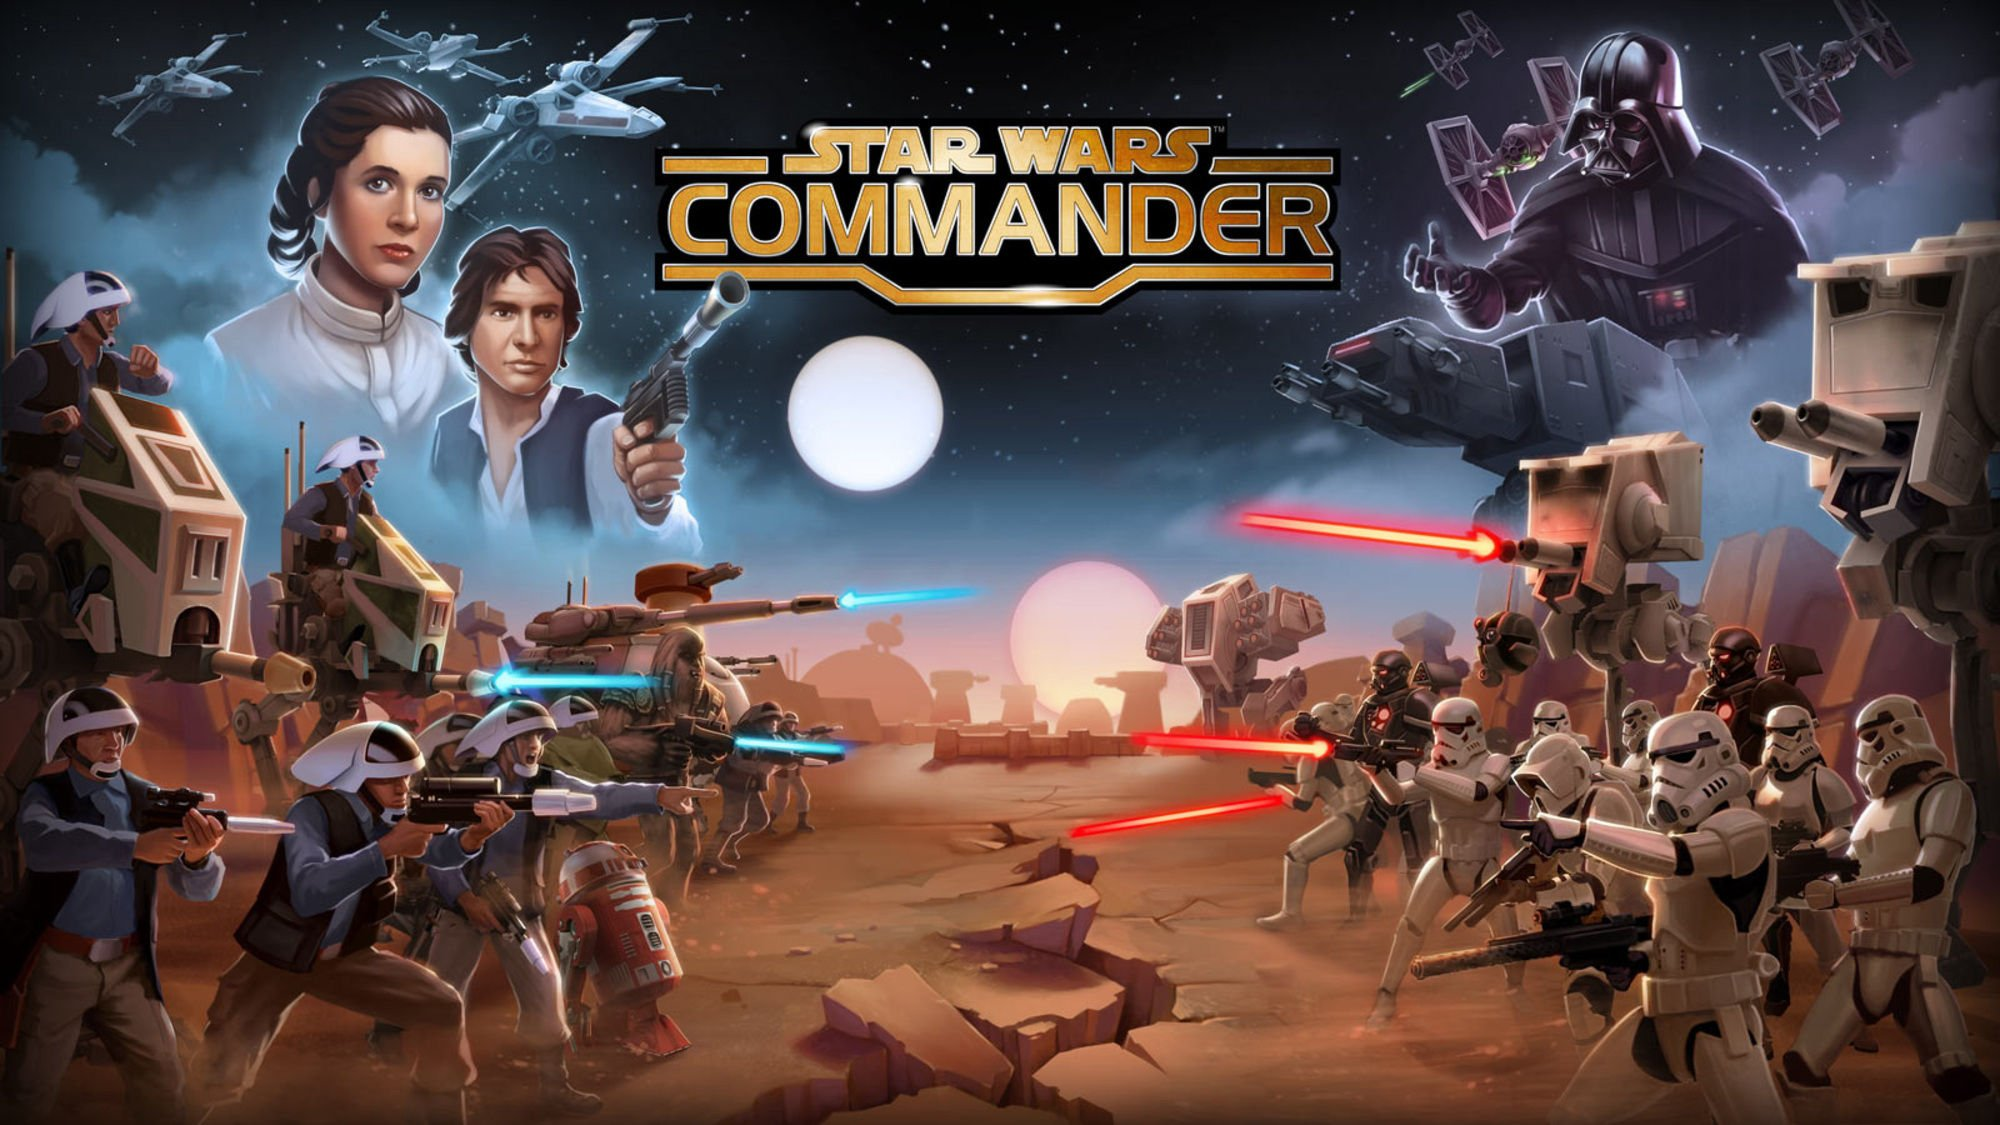 Image currently unavailable. Go to www.generator.safelyhack.com and choose Star Wars: Commander image, you will be redirect to Star Wars: Commander Generator site.